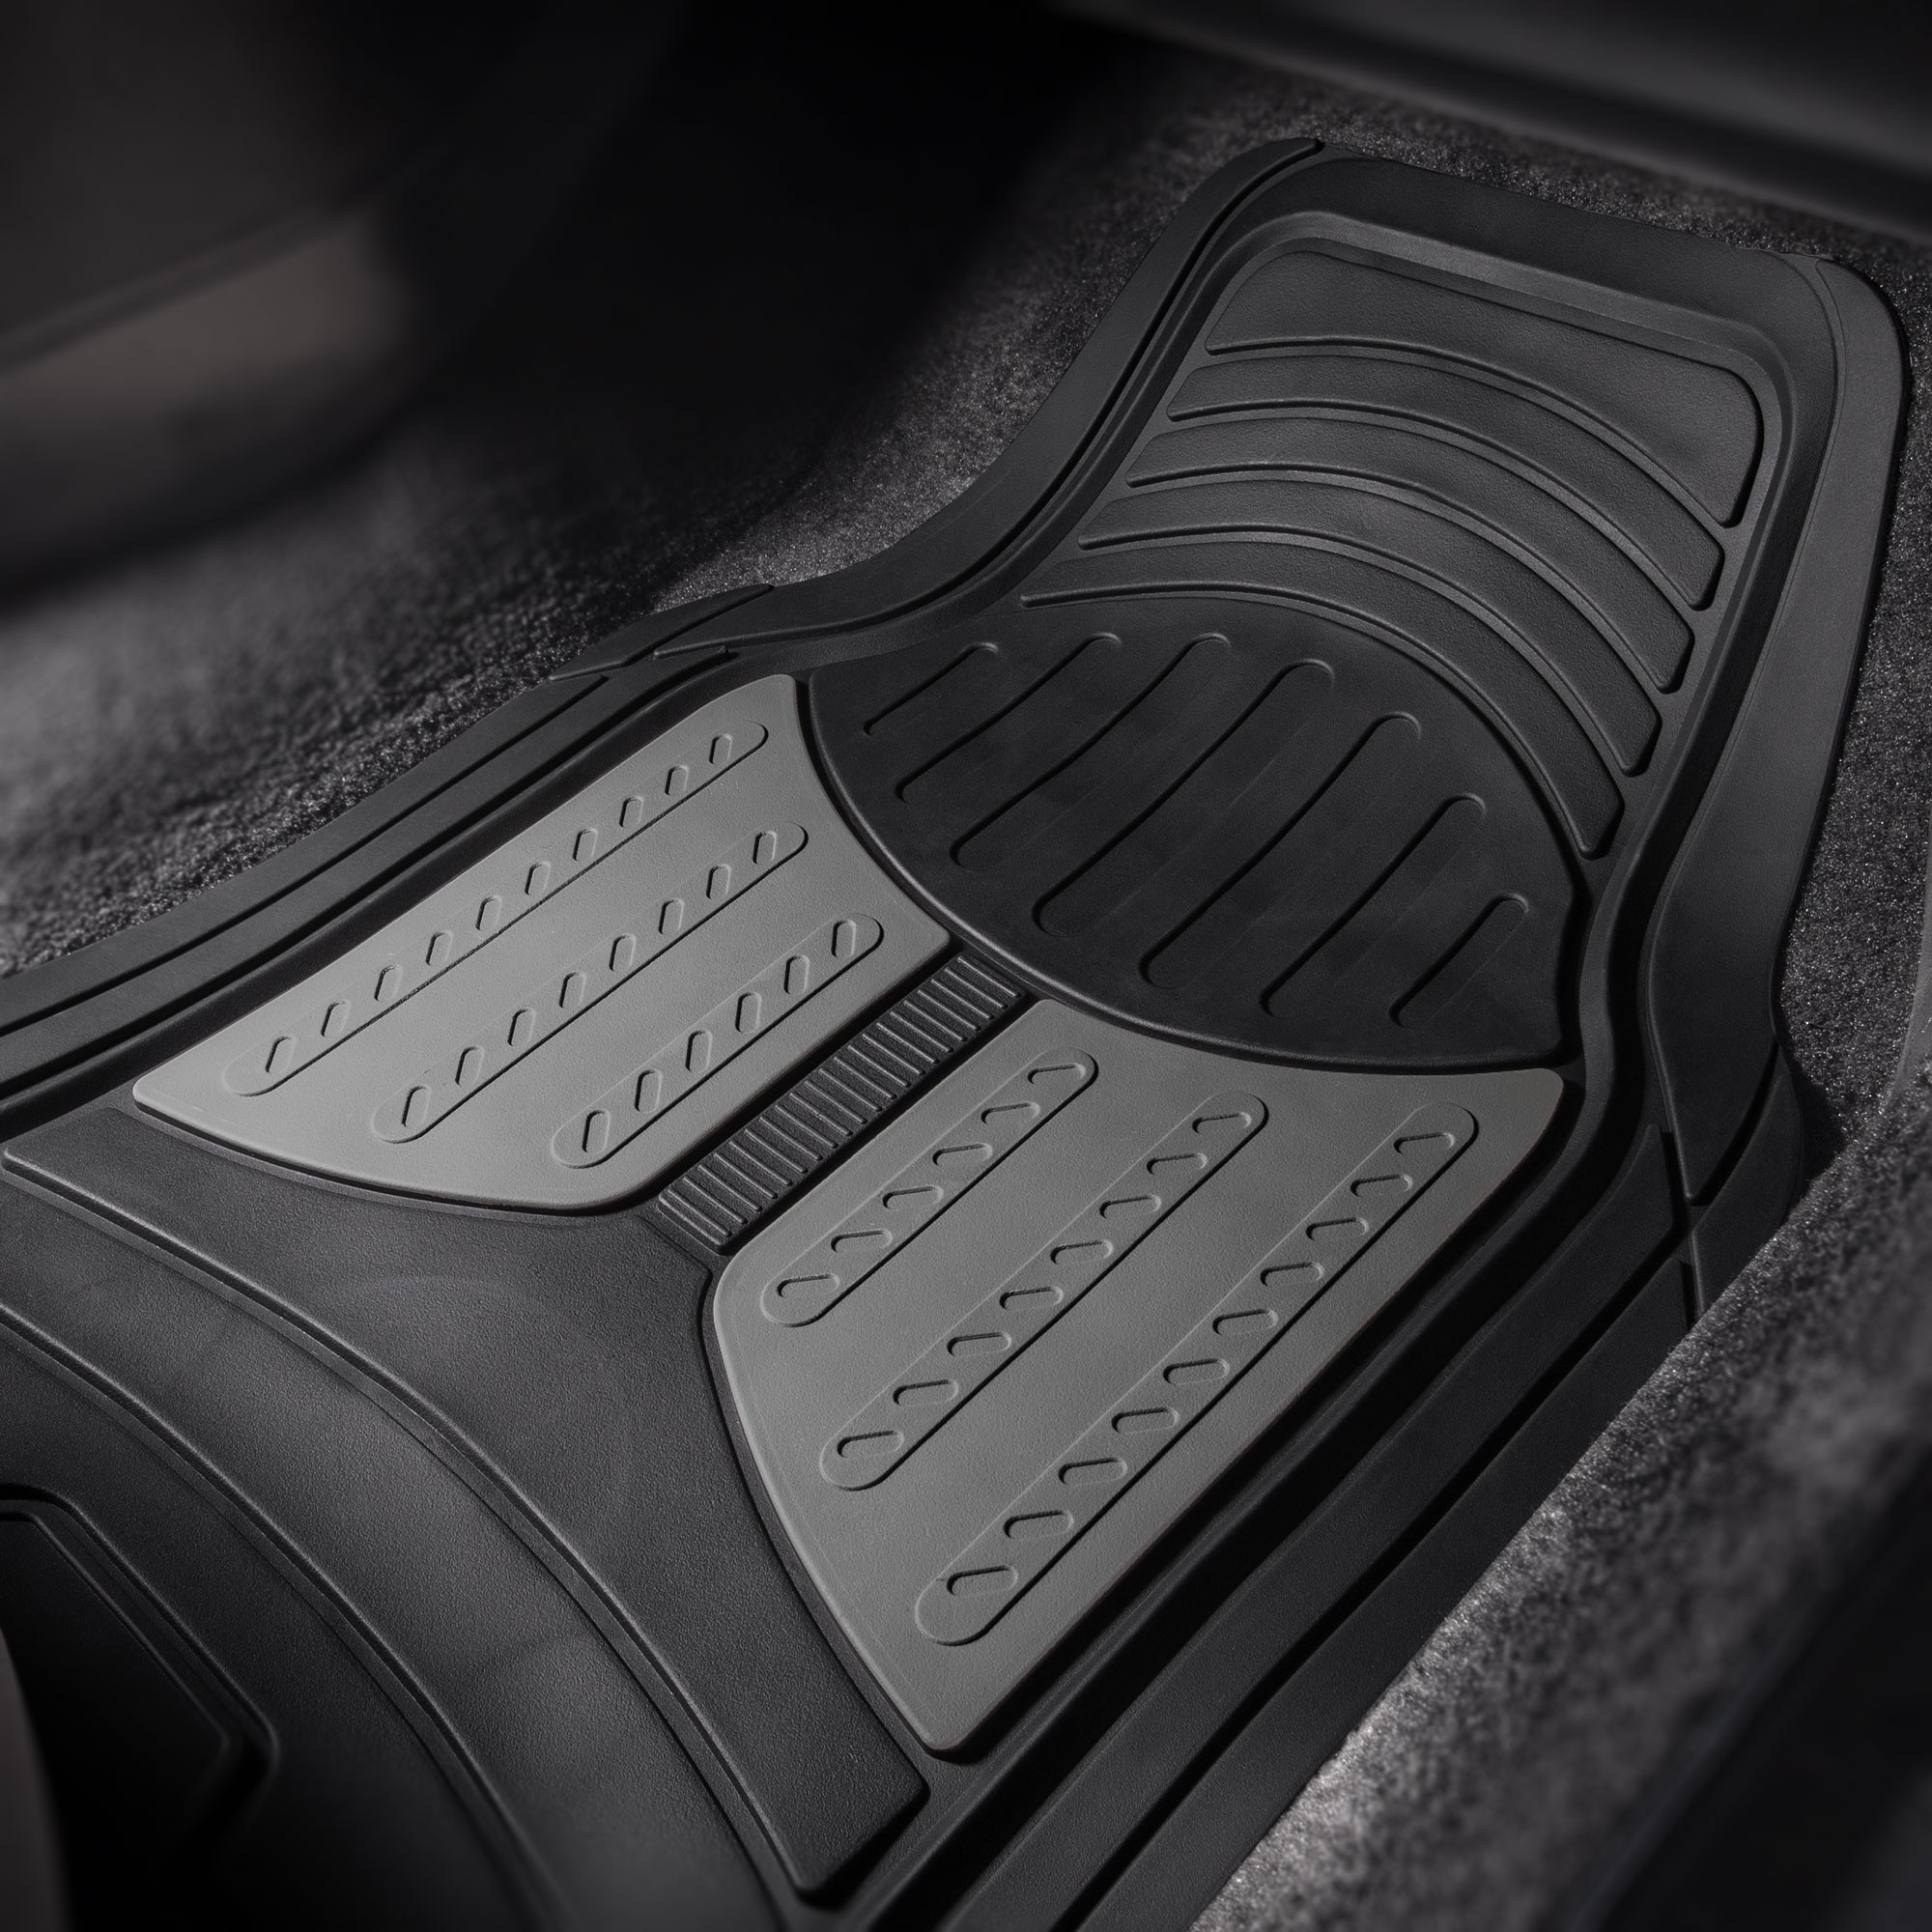 thumbnail 18 - Car Floor Mats for All Weather Rubber 2-Tone Design Heavy Duty - 4 Pc Set